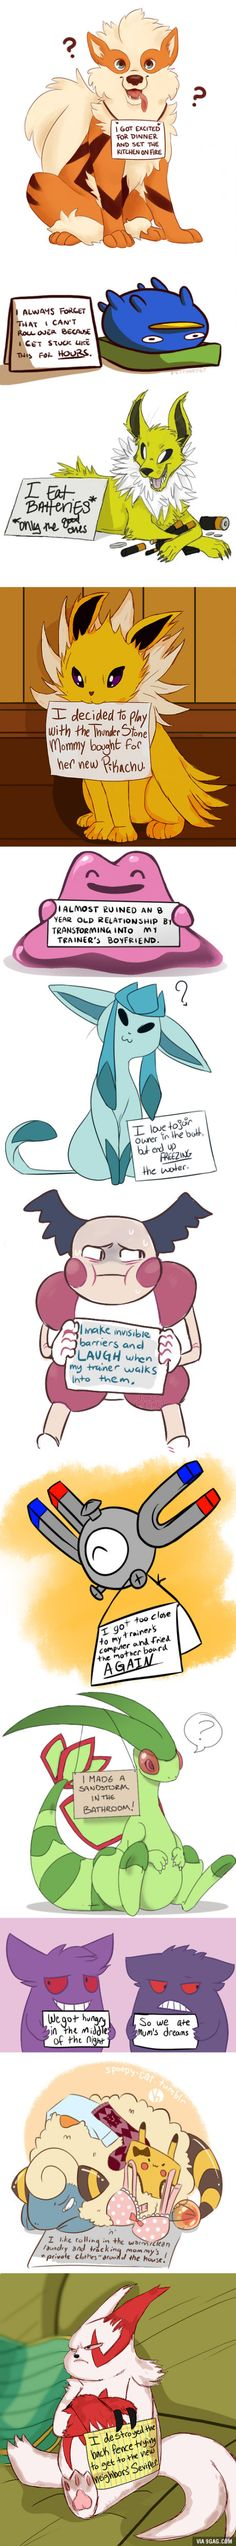 So pokemon shaming is a thing?